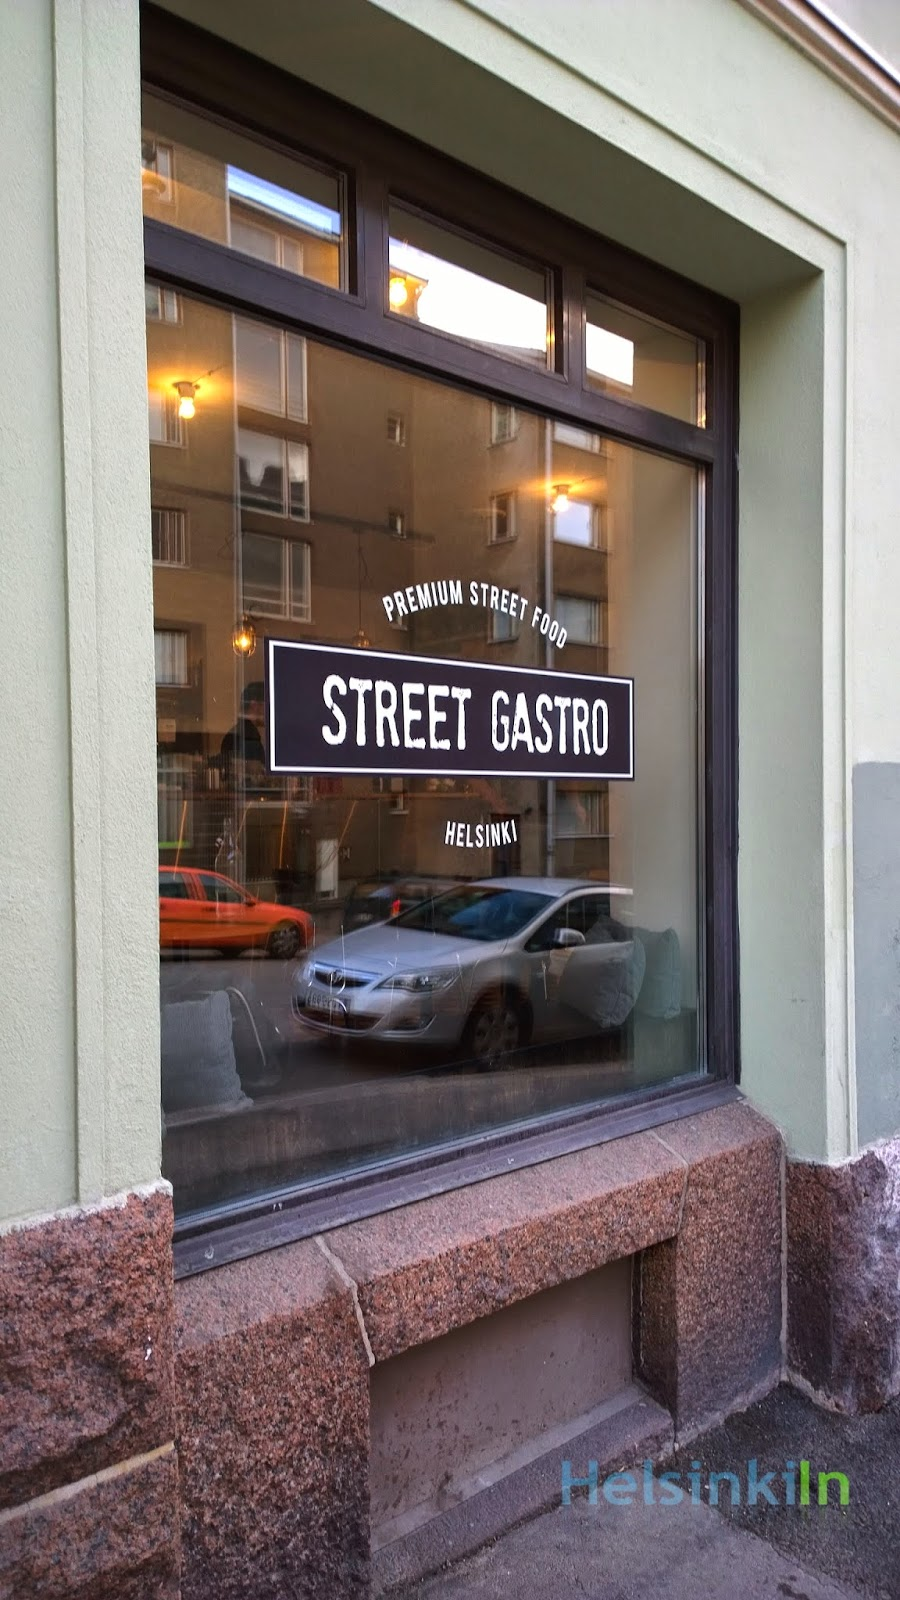 StreetGastro on Vaasankatu